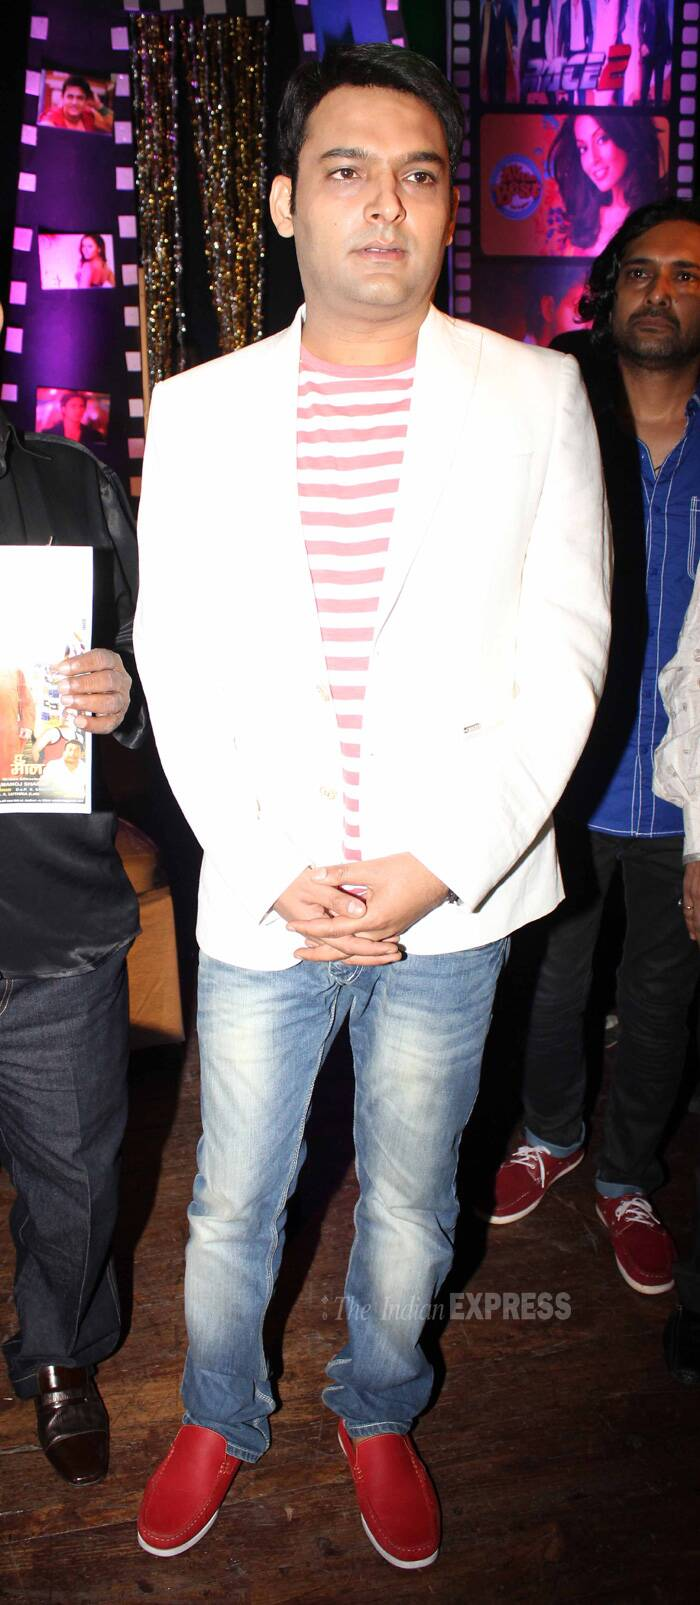 Kapil wore a blazer with a striped tee shirt, denims and bright red shoes. (IE Photo: Amit Chakravarty)